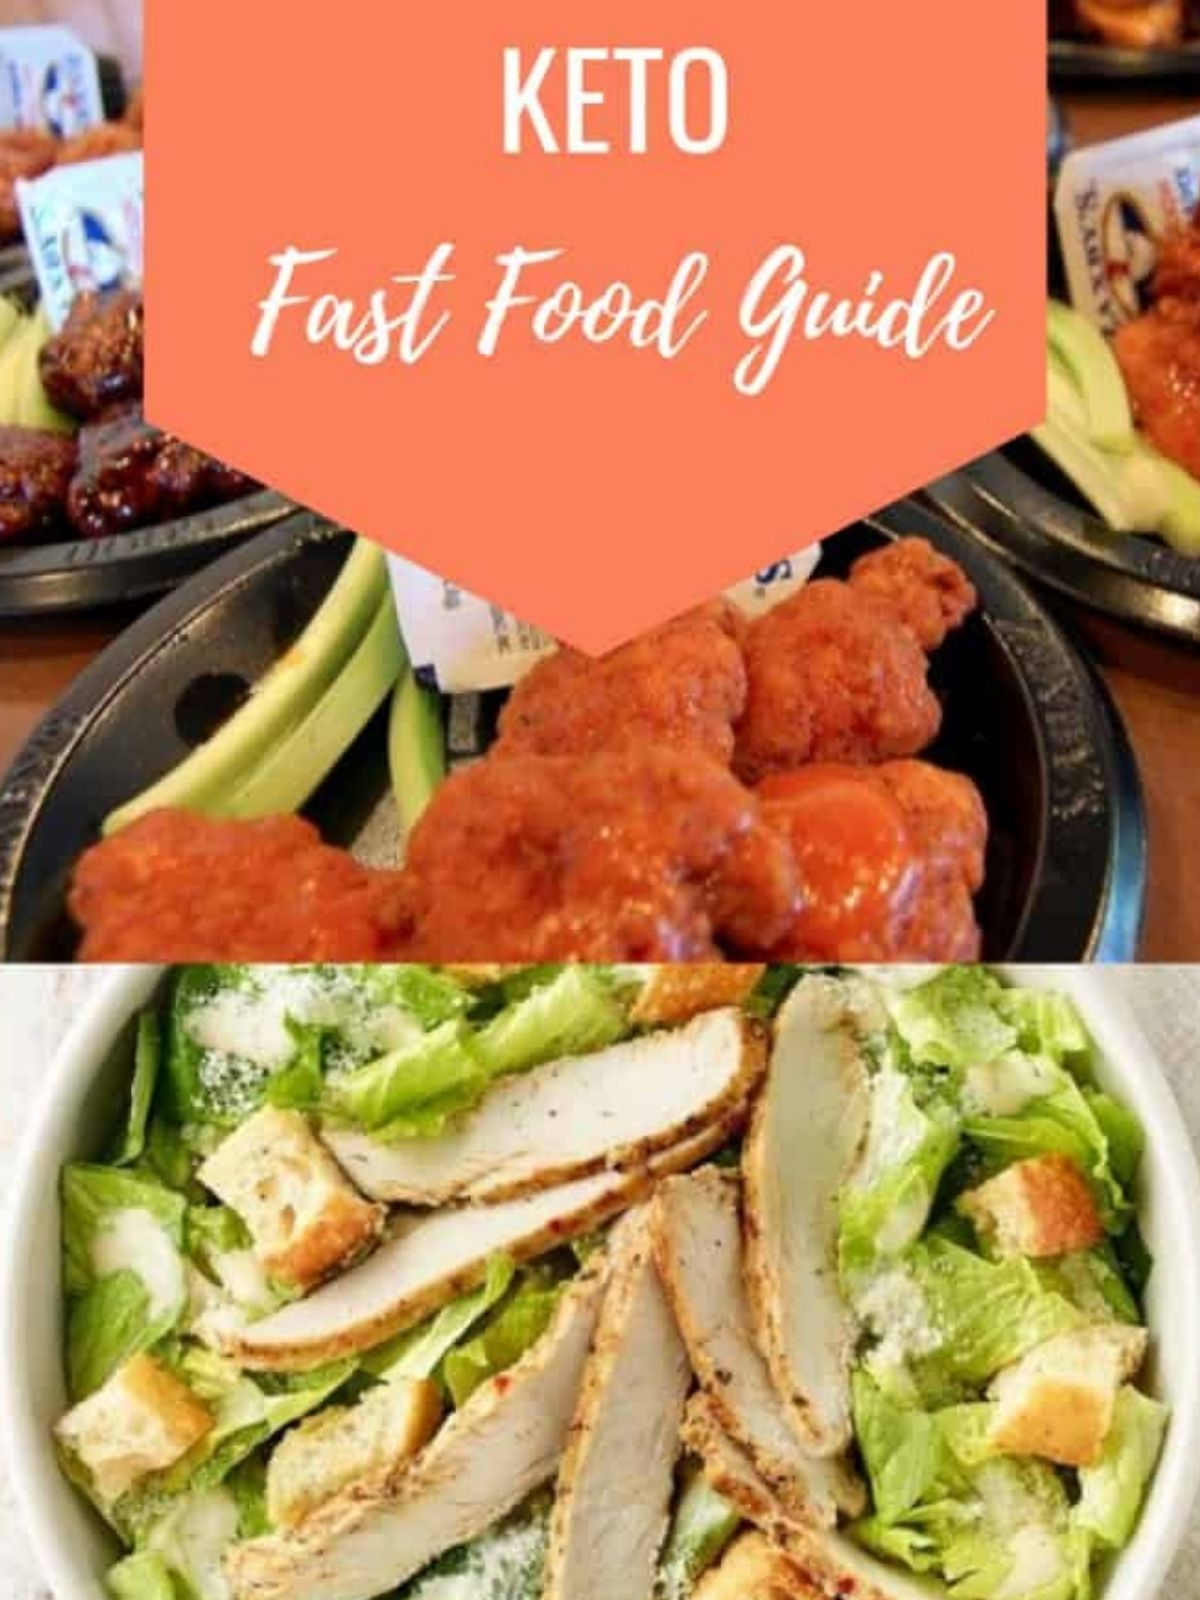 A collage of different keto fast food options from different restaurants including Zaxby's and Wendy's.